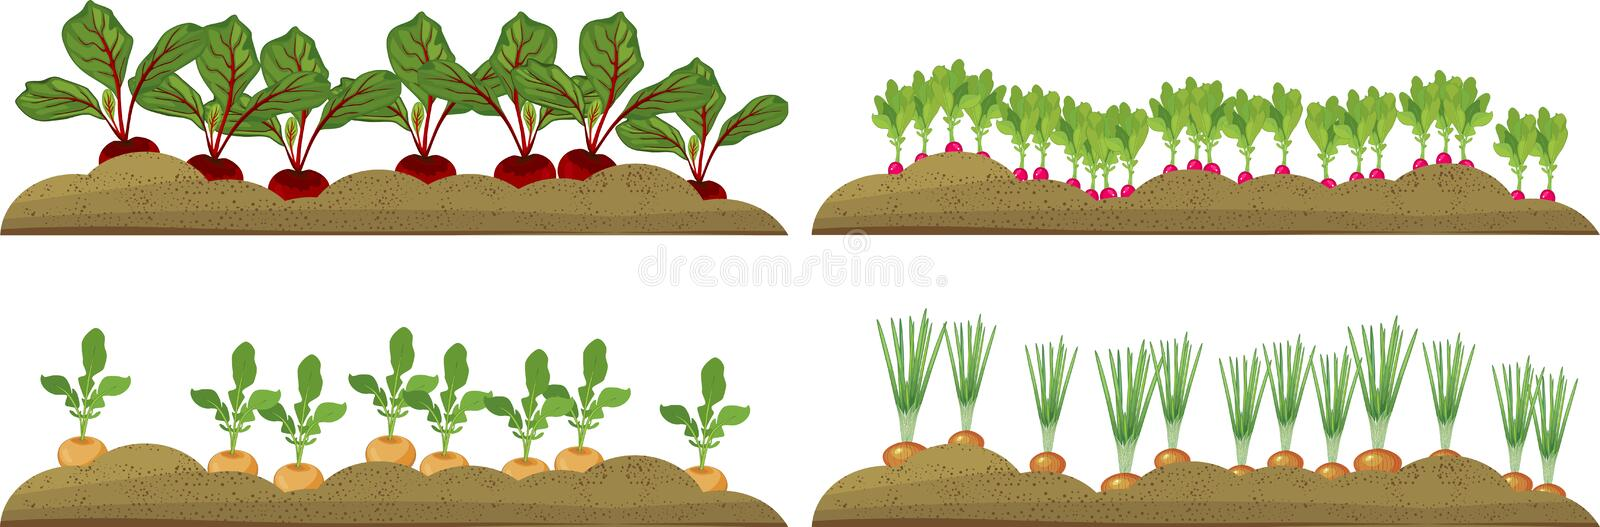 Vegetable plots with different root vegetables. Set of vegetable plots with different root vegetables royalty free illustration